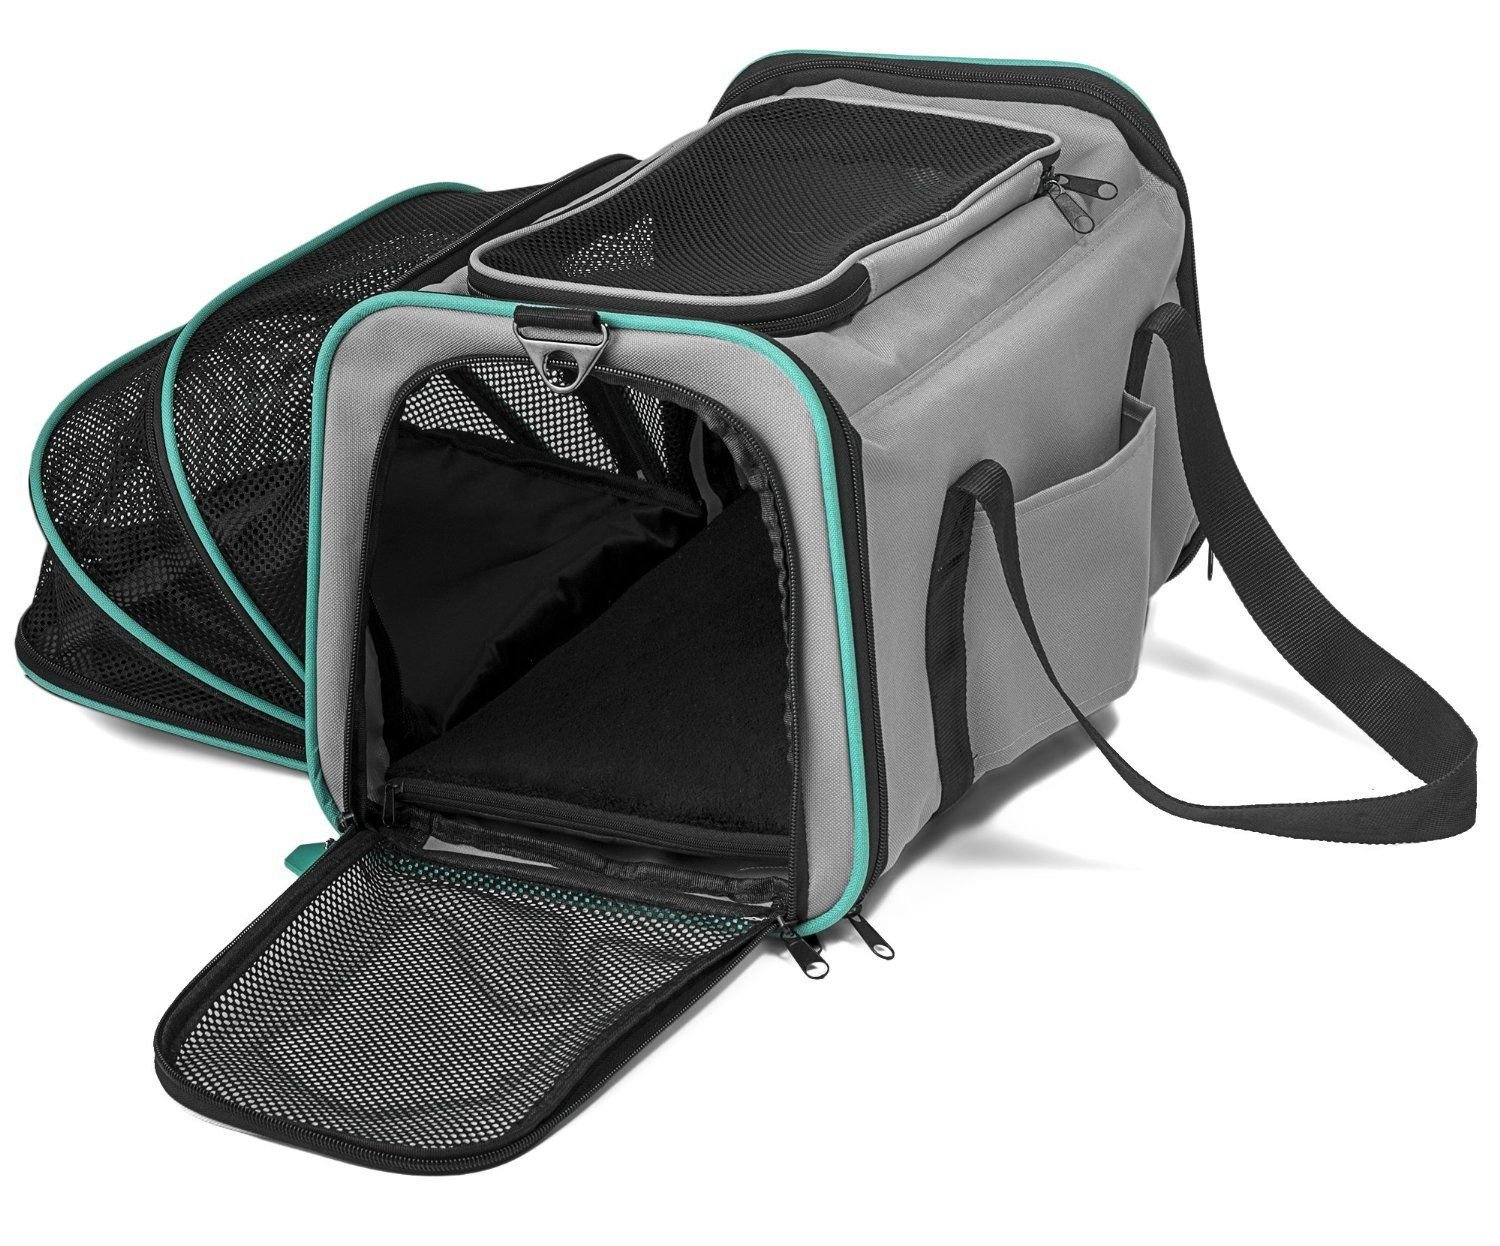 Pawdle Expandable and Foldable Pet Carrier Domestic Airline Approved (Heather Gray) by Pawdle (Image #1)